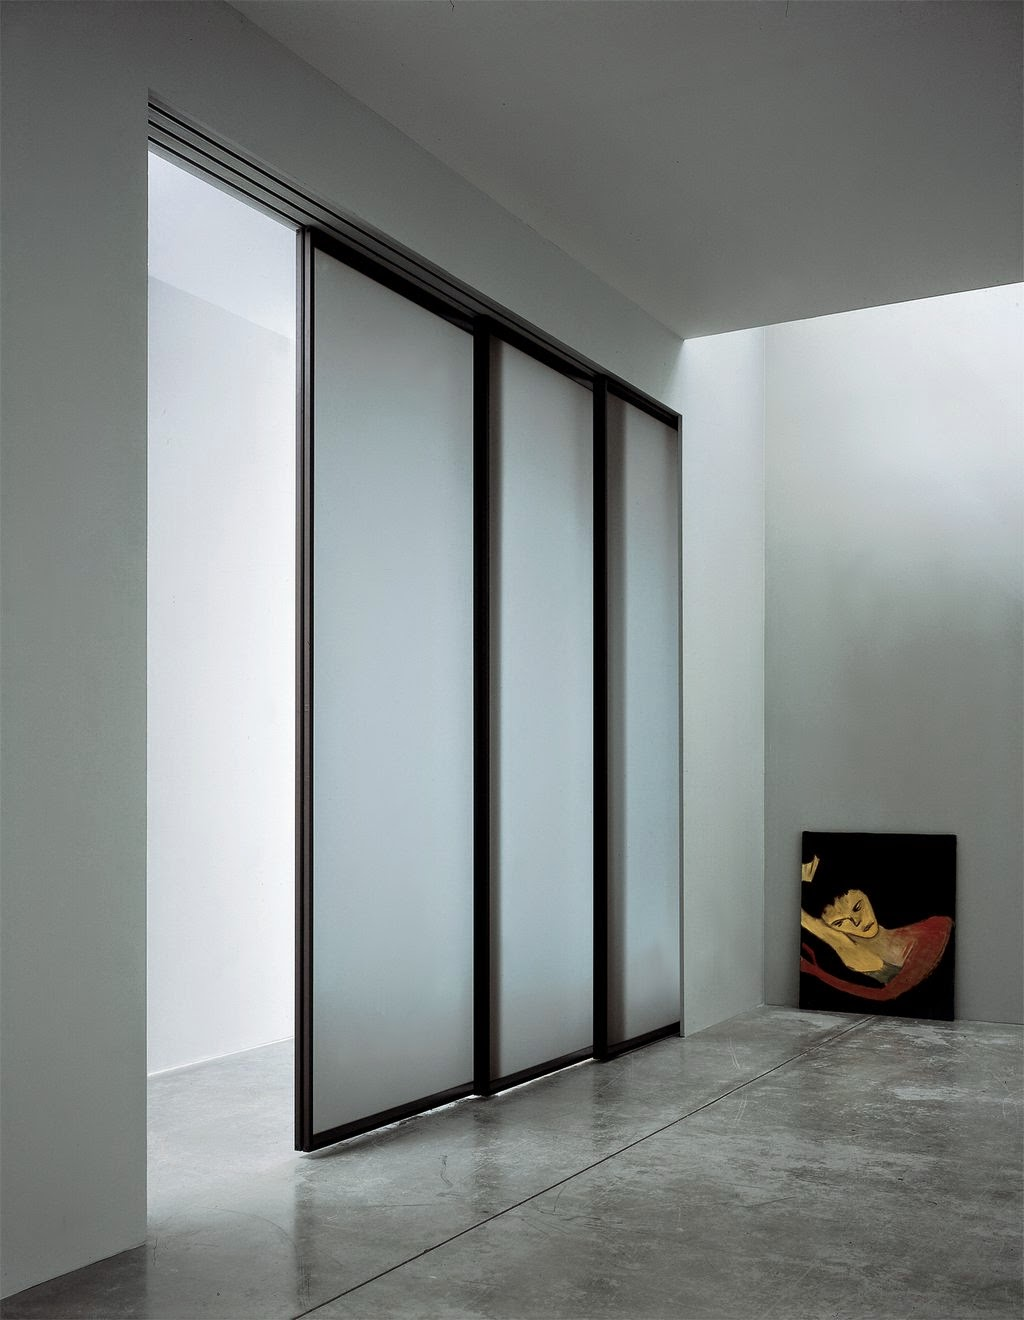 Incroyable Modern Interior Ideas Using Iced Glass Doors Design. How To Make Glass Doors  More Private ...